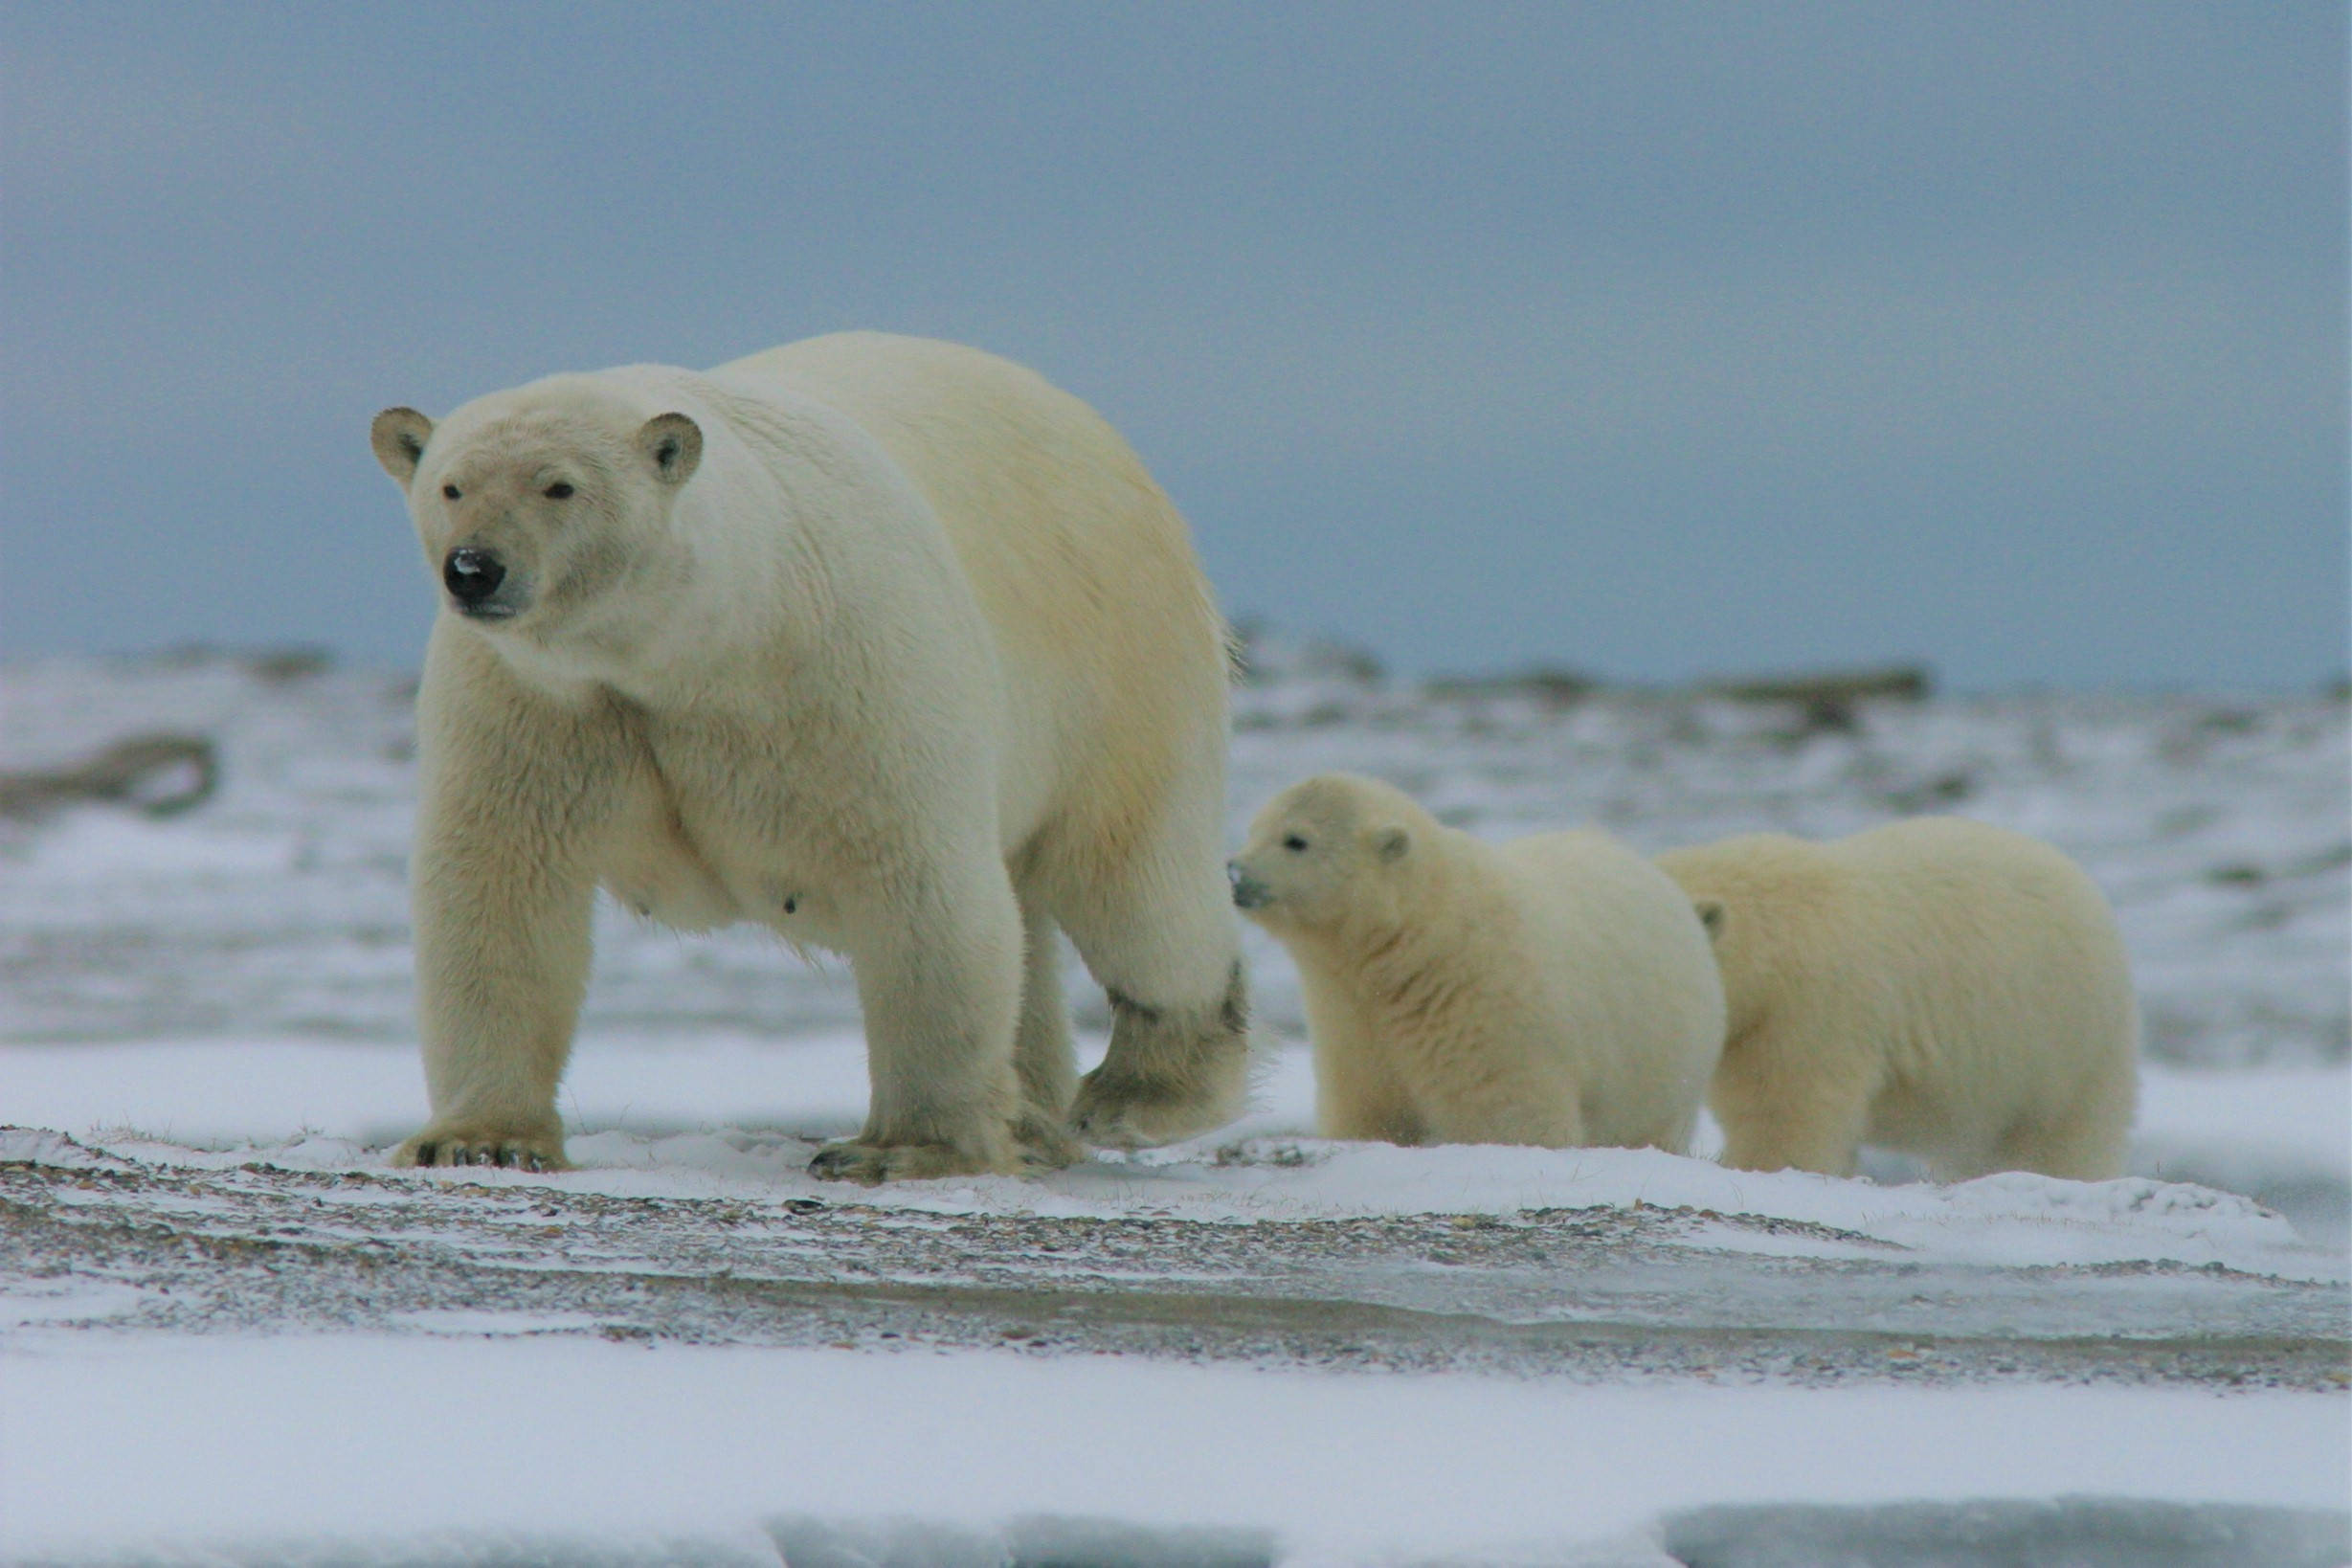 A polar bear with two cubs following her over the snow.